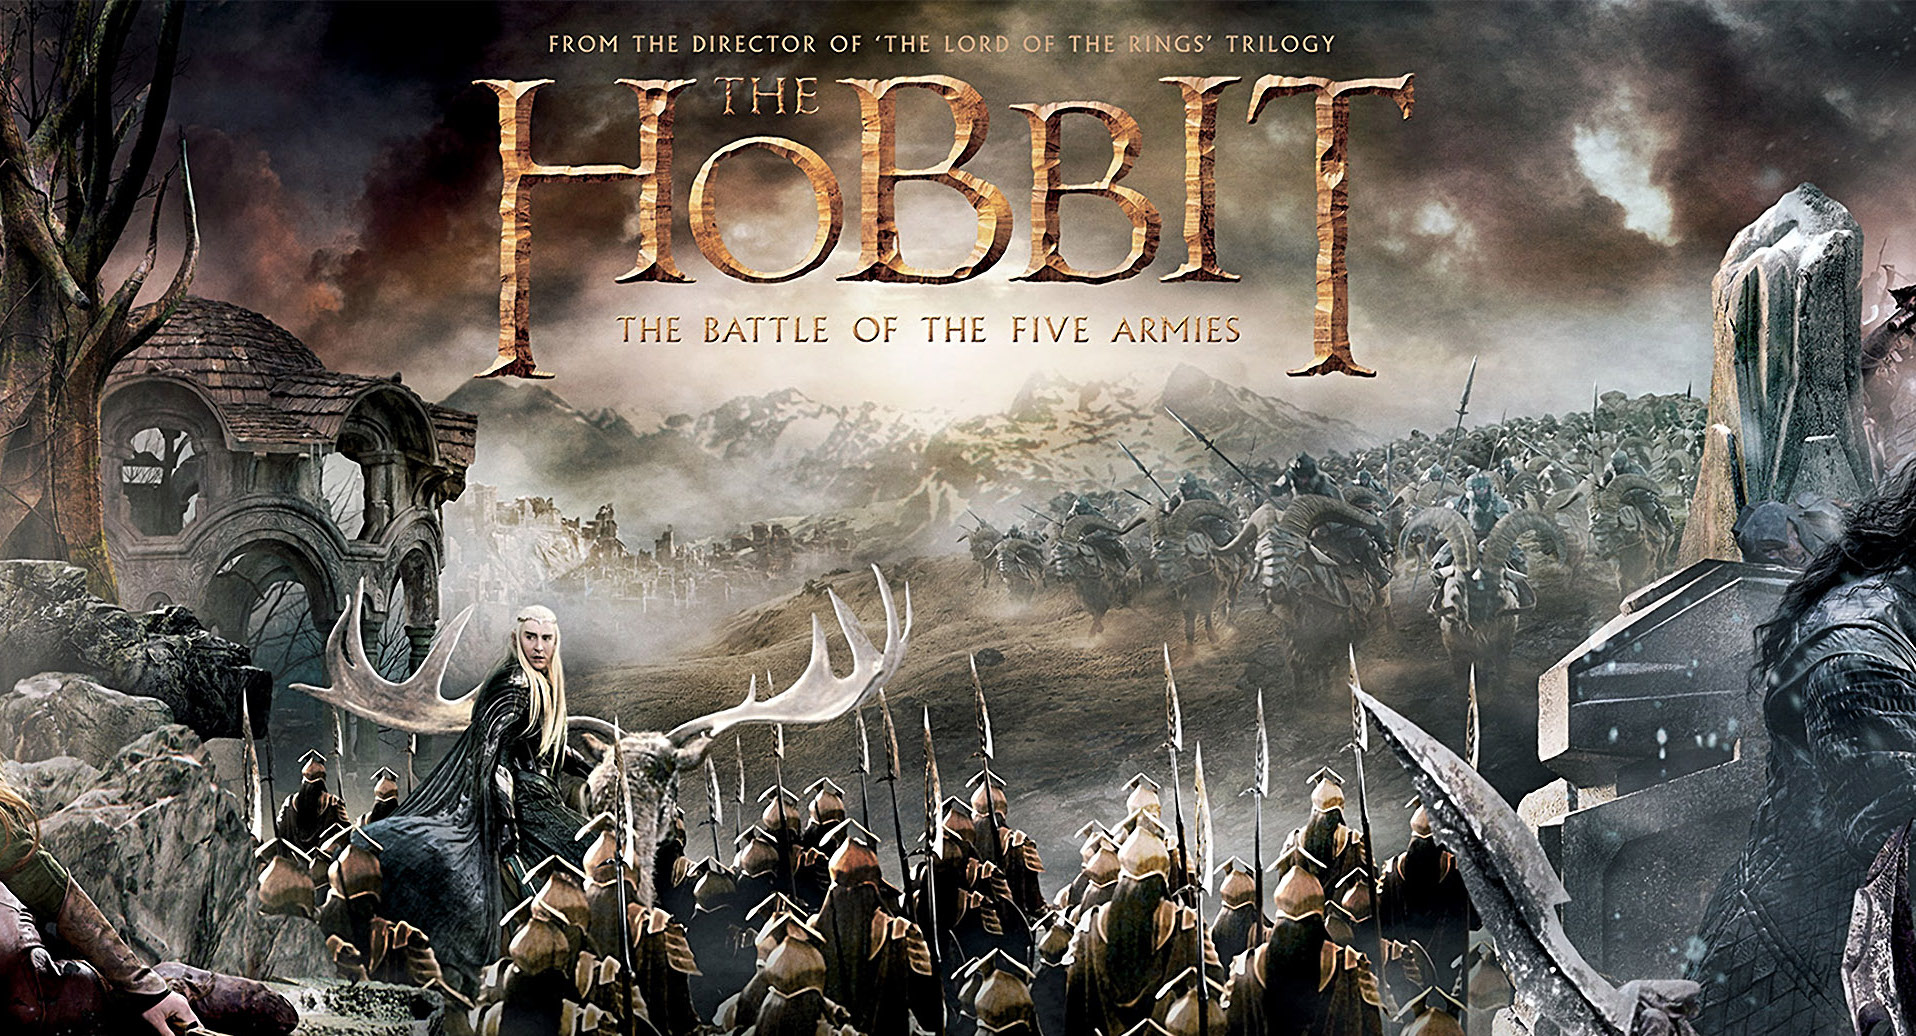 The Hobbit: Battle of the Five Armies and Writing